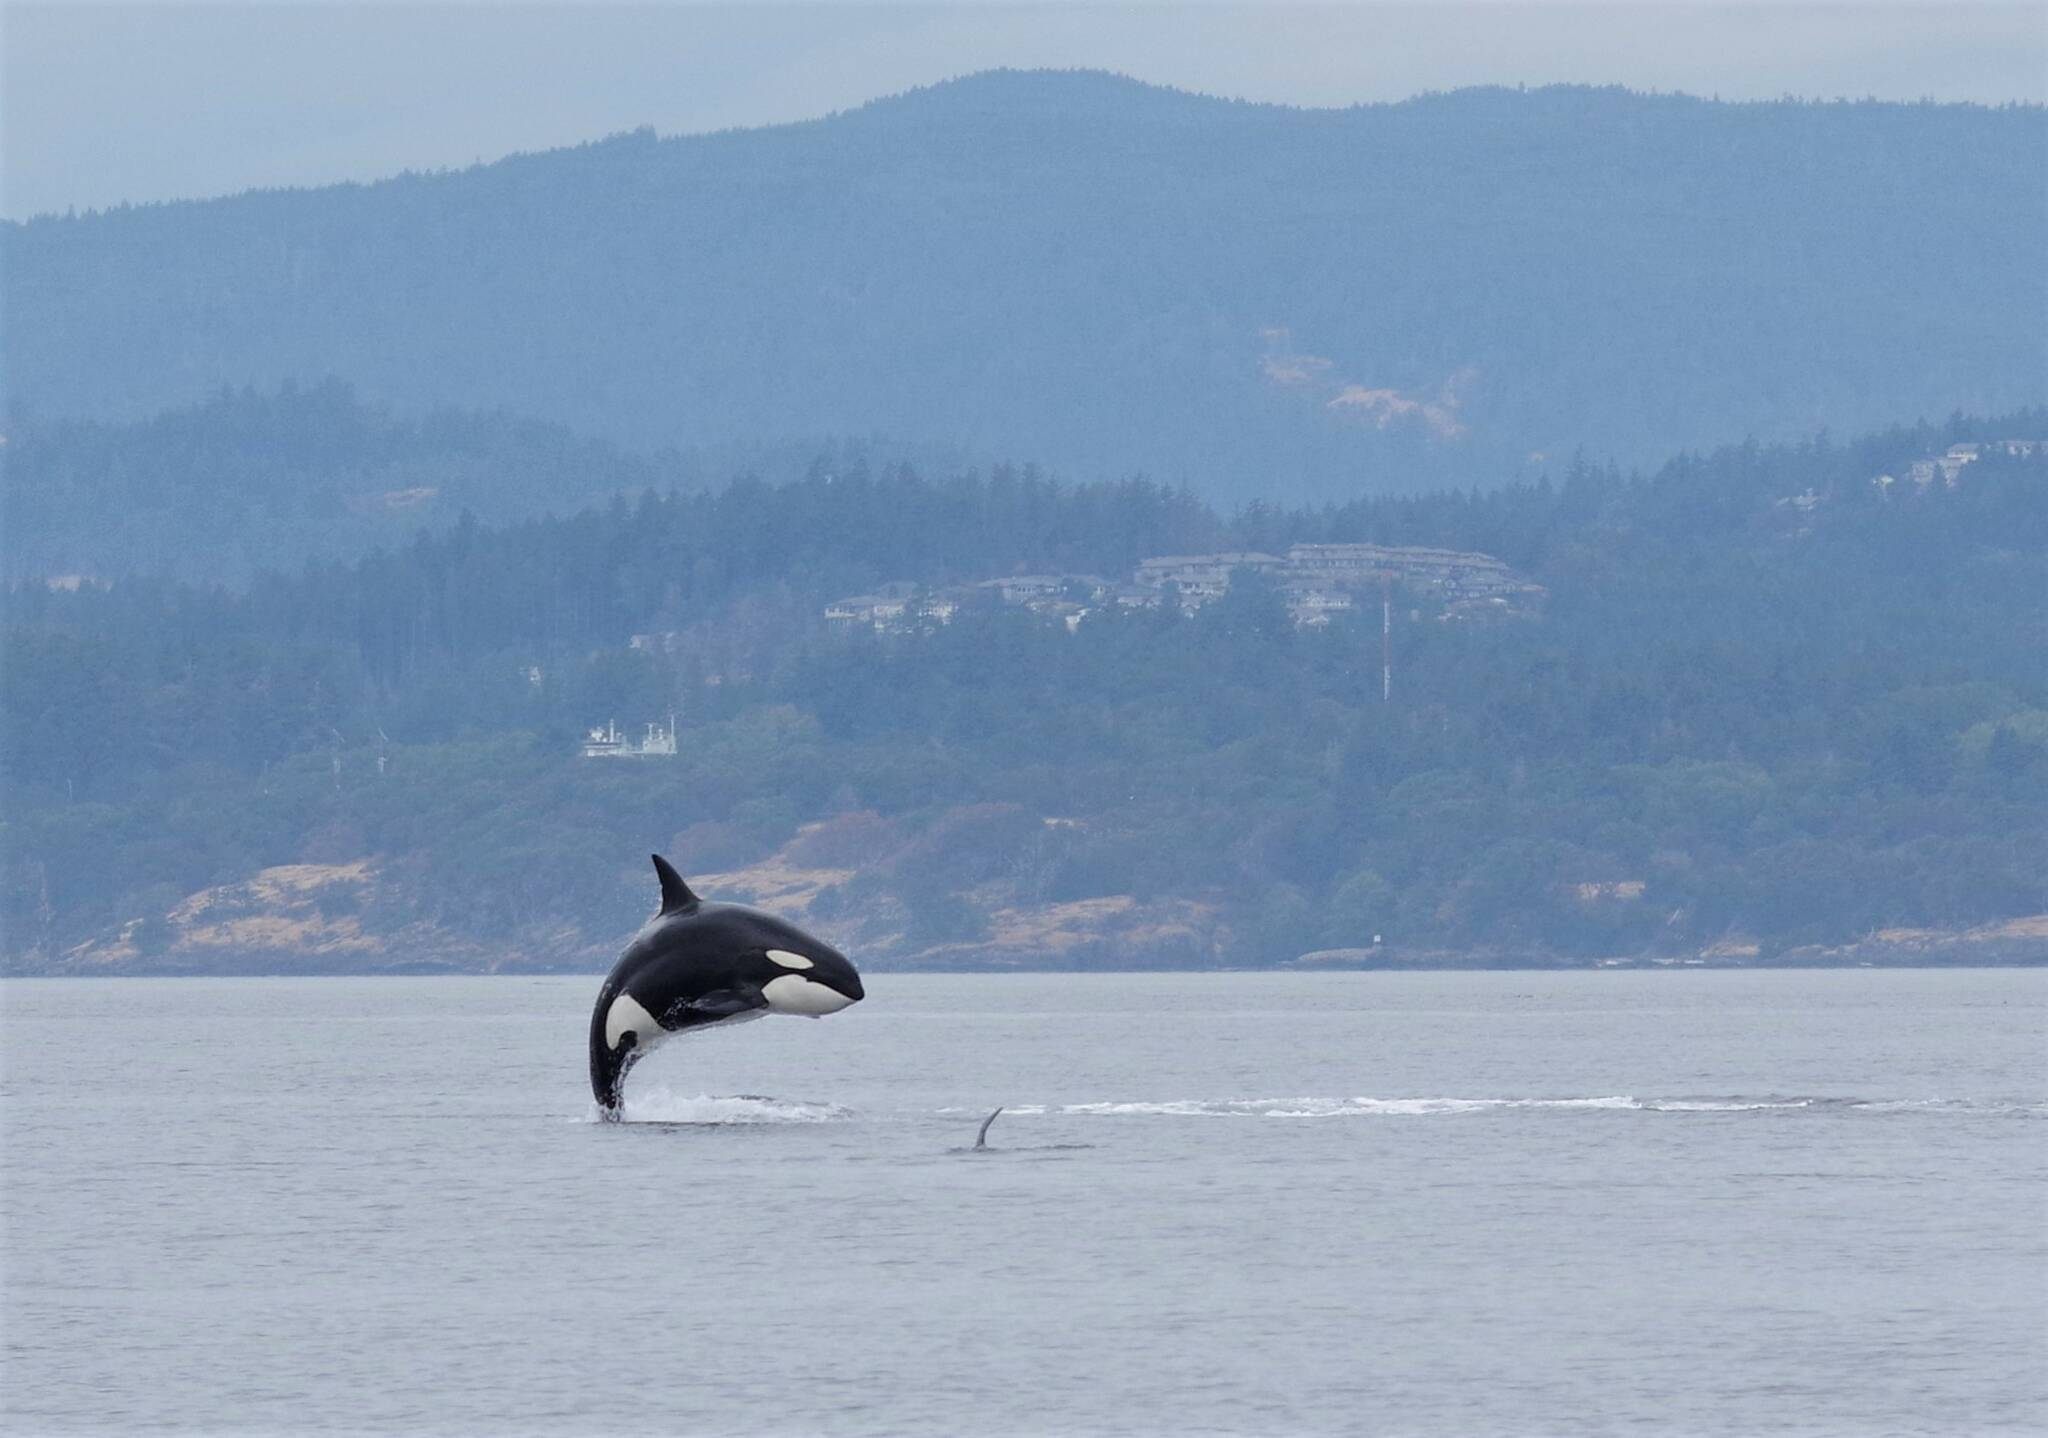 A Bigg's killer whale seemingly defying gravity near Victoria. (Photo by Paul Pudwell/Sooke Coastal Explorations)